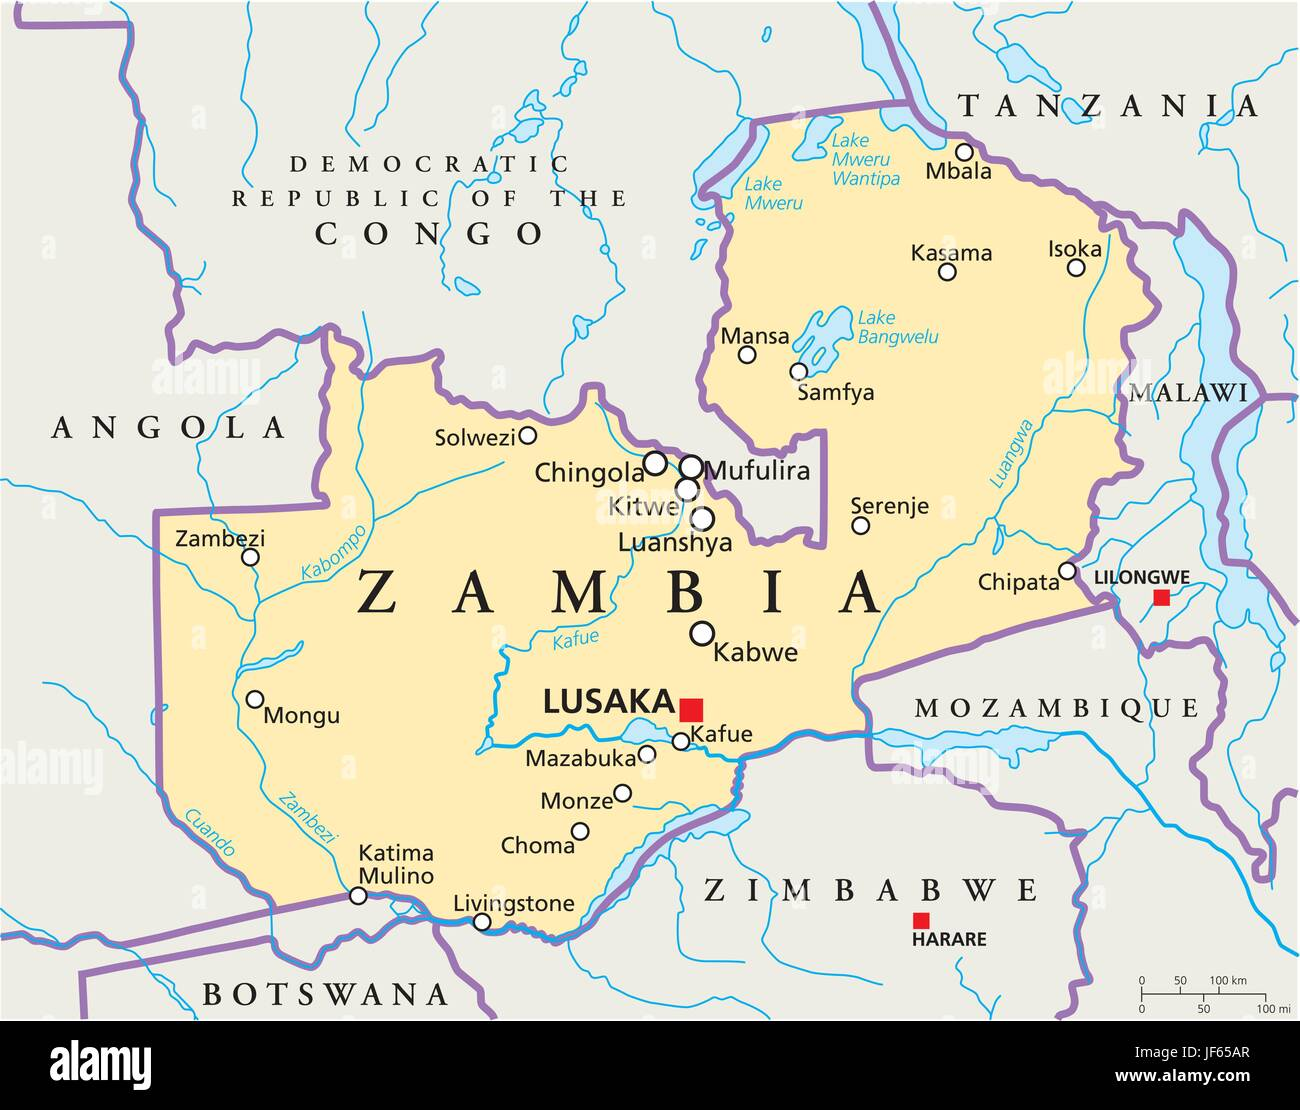 Zambia, Map, Atlas, Map Of The World, Political, Africa, Country, Republic,